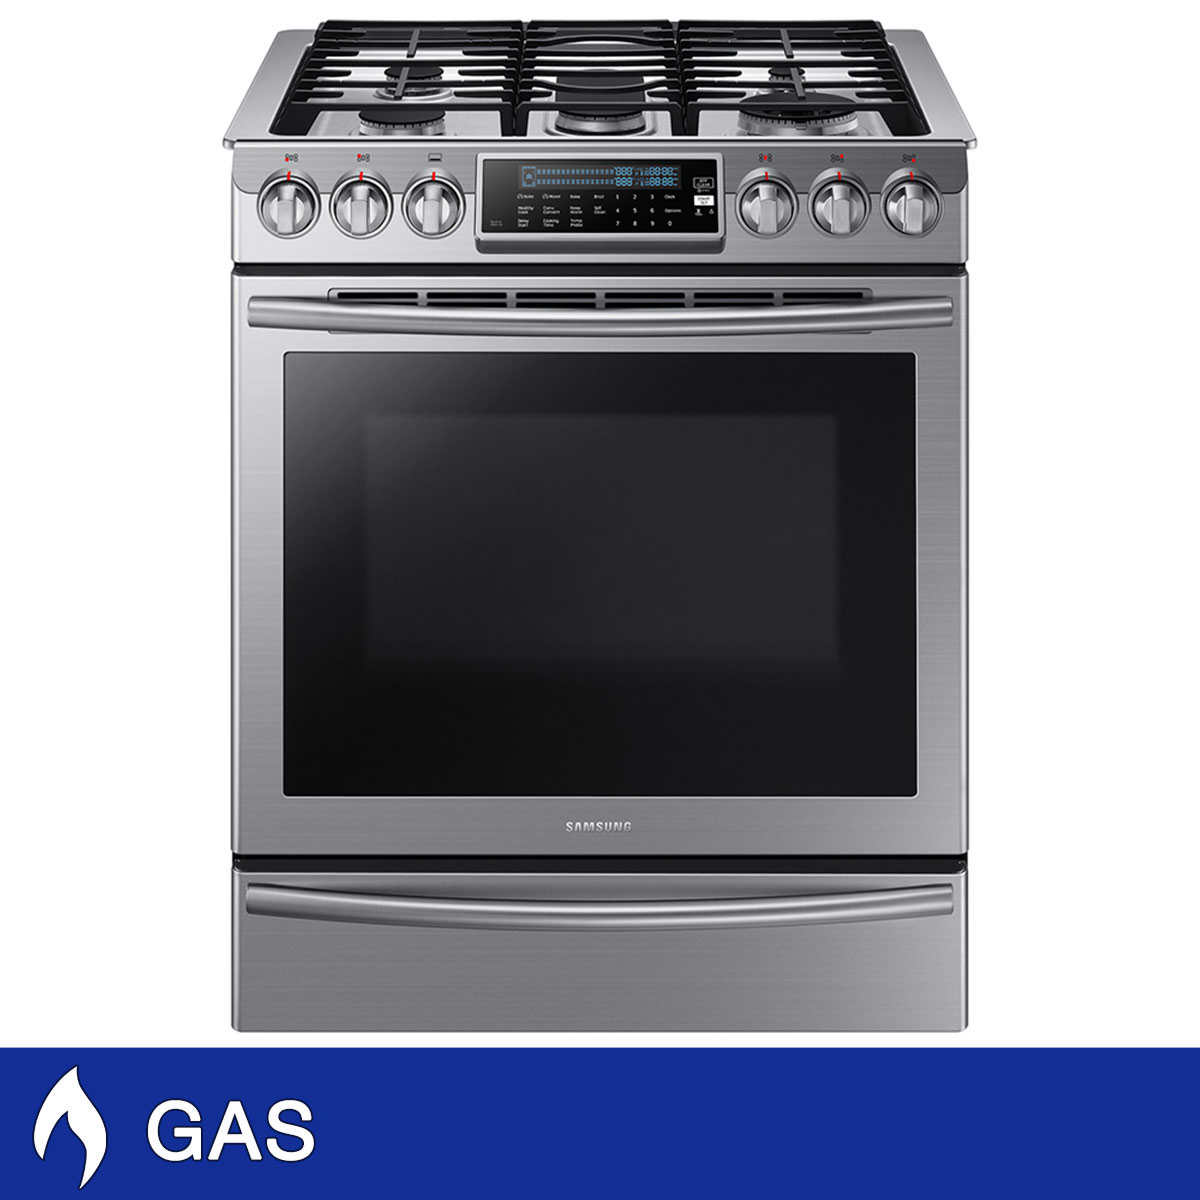 Kitchen appliances in slate color - Samsung 5 8cuft Gas Slide In Stainless Steel Range With True Convection In Stainless Steel